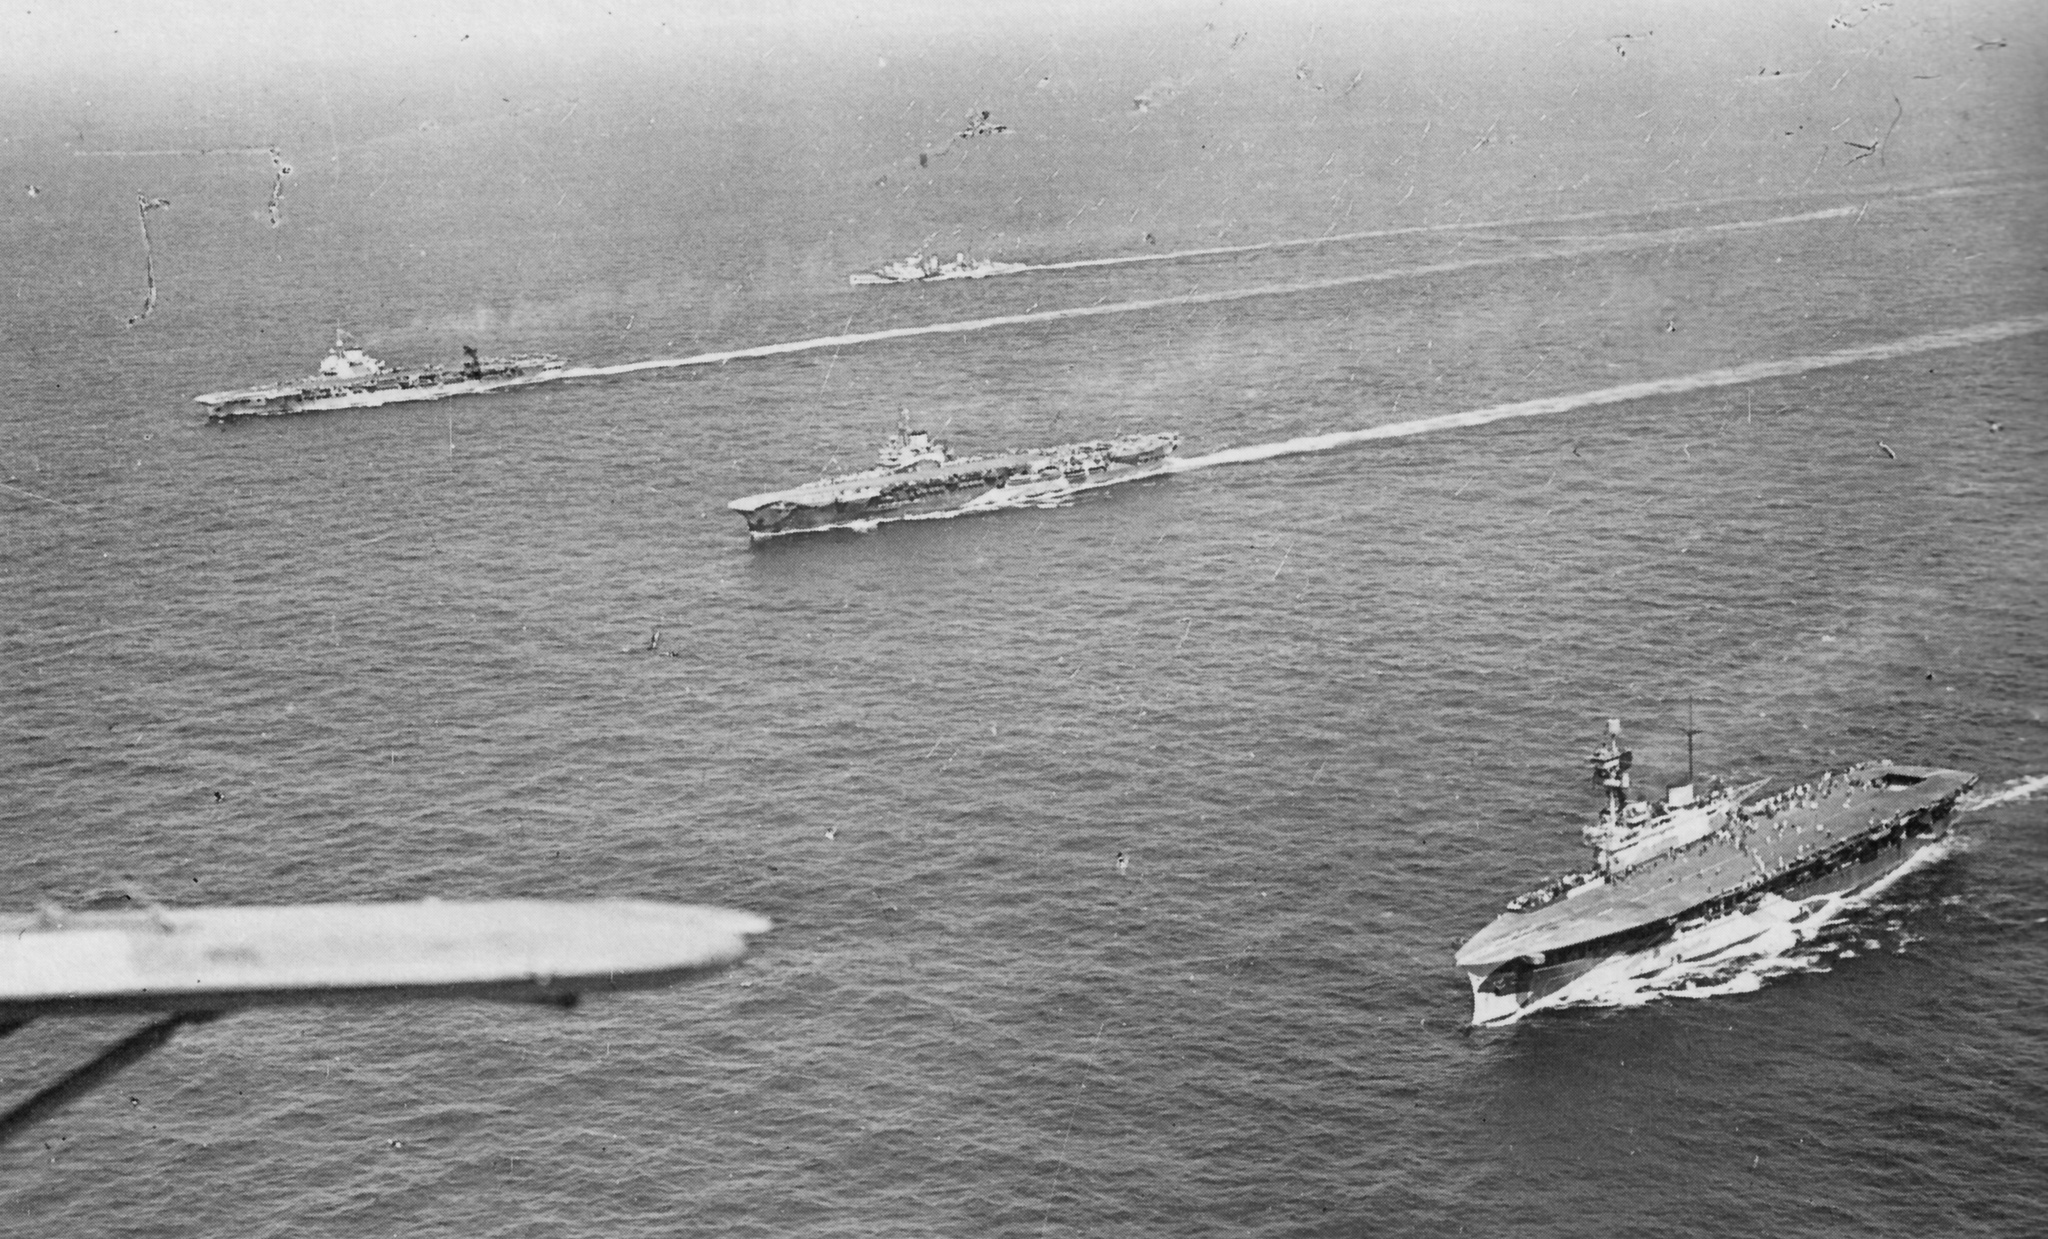 Preliminary movements 3 - 10 August 1942: Aerial view of some of the ships escorting the convoy. Nearest the camera is HMS EAGLE, then HMS INDOMITABLE and HMS VICTORIOUS and in the background are HMS FURIOUS and HMS ARGUS.